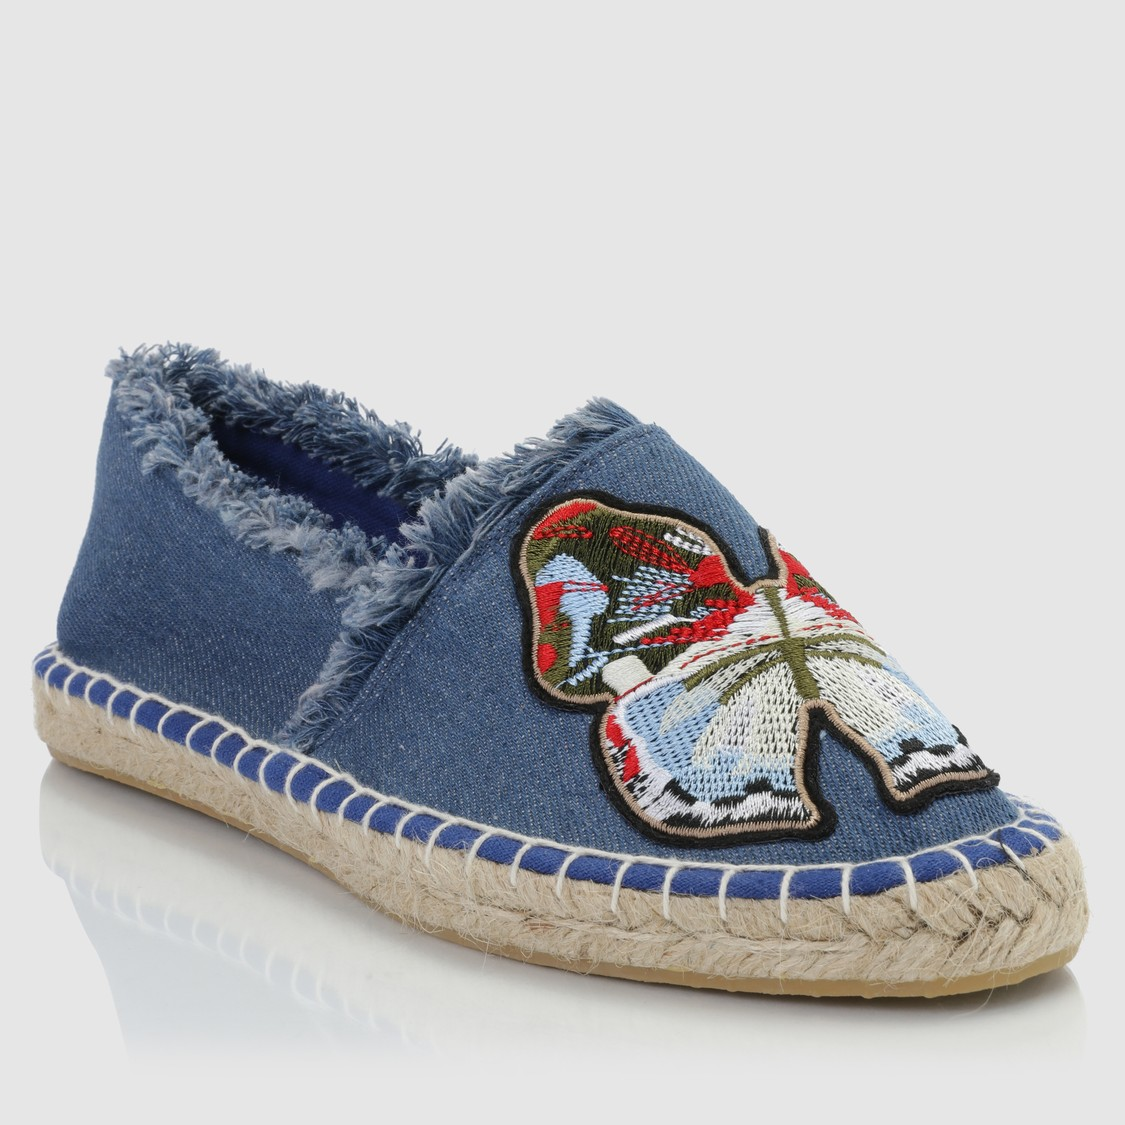 Embroidered Slip-On Espadrille Shoes with Fringes